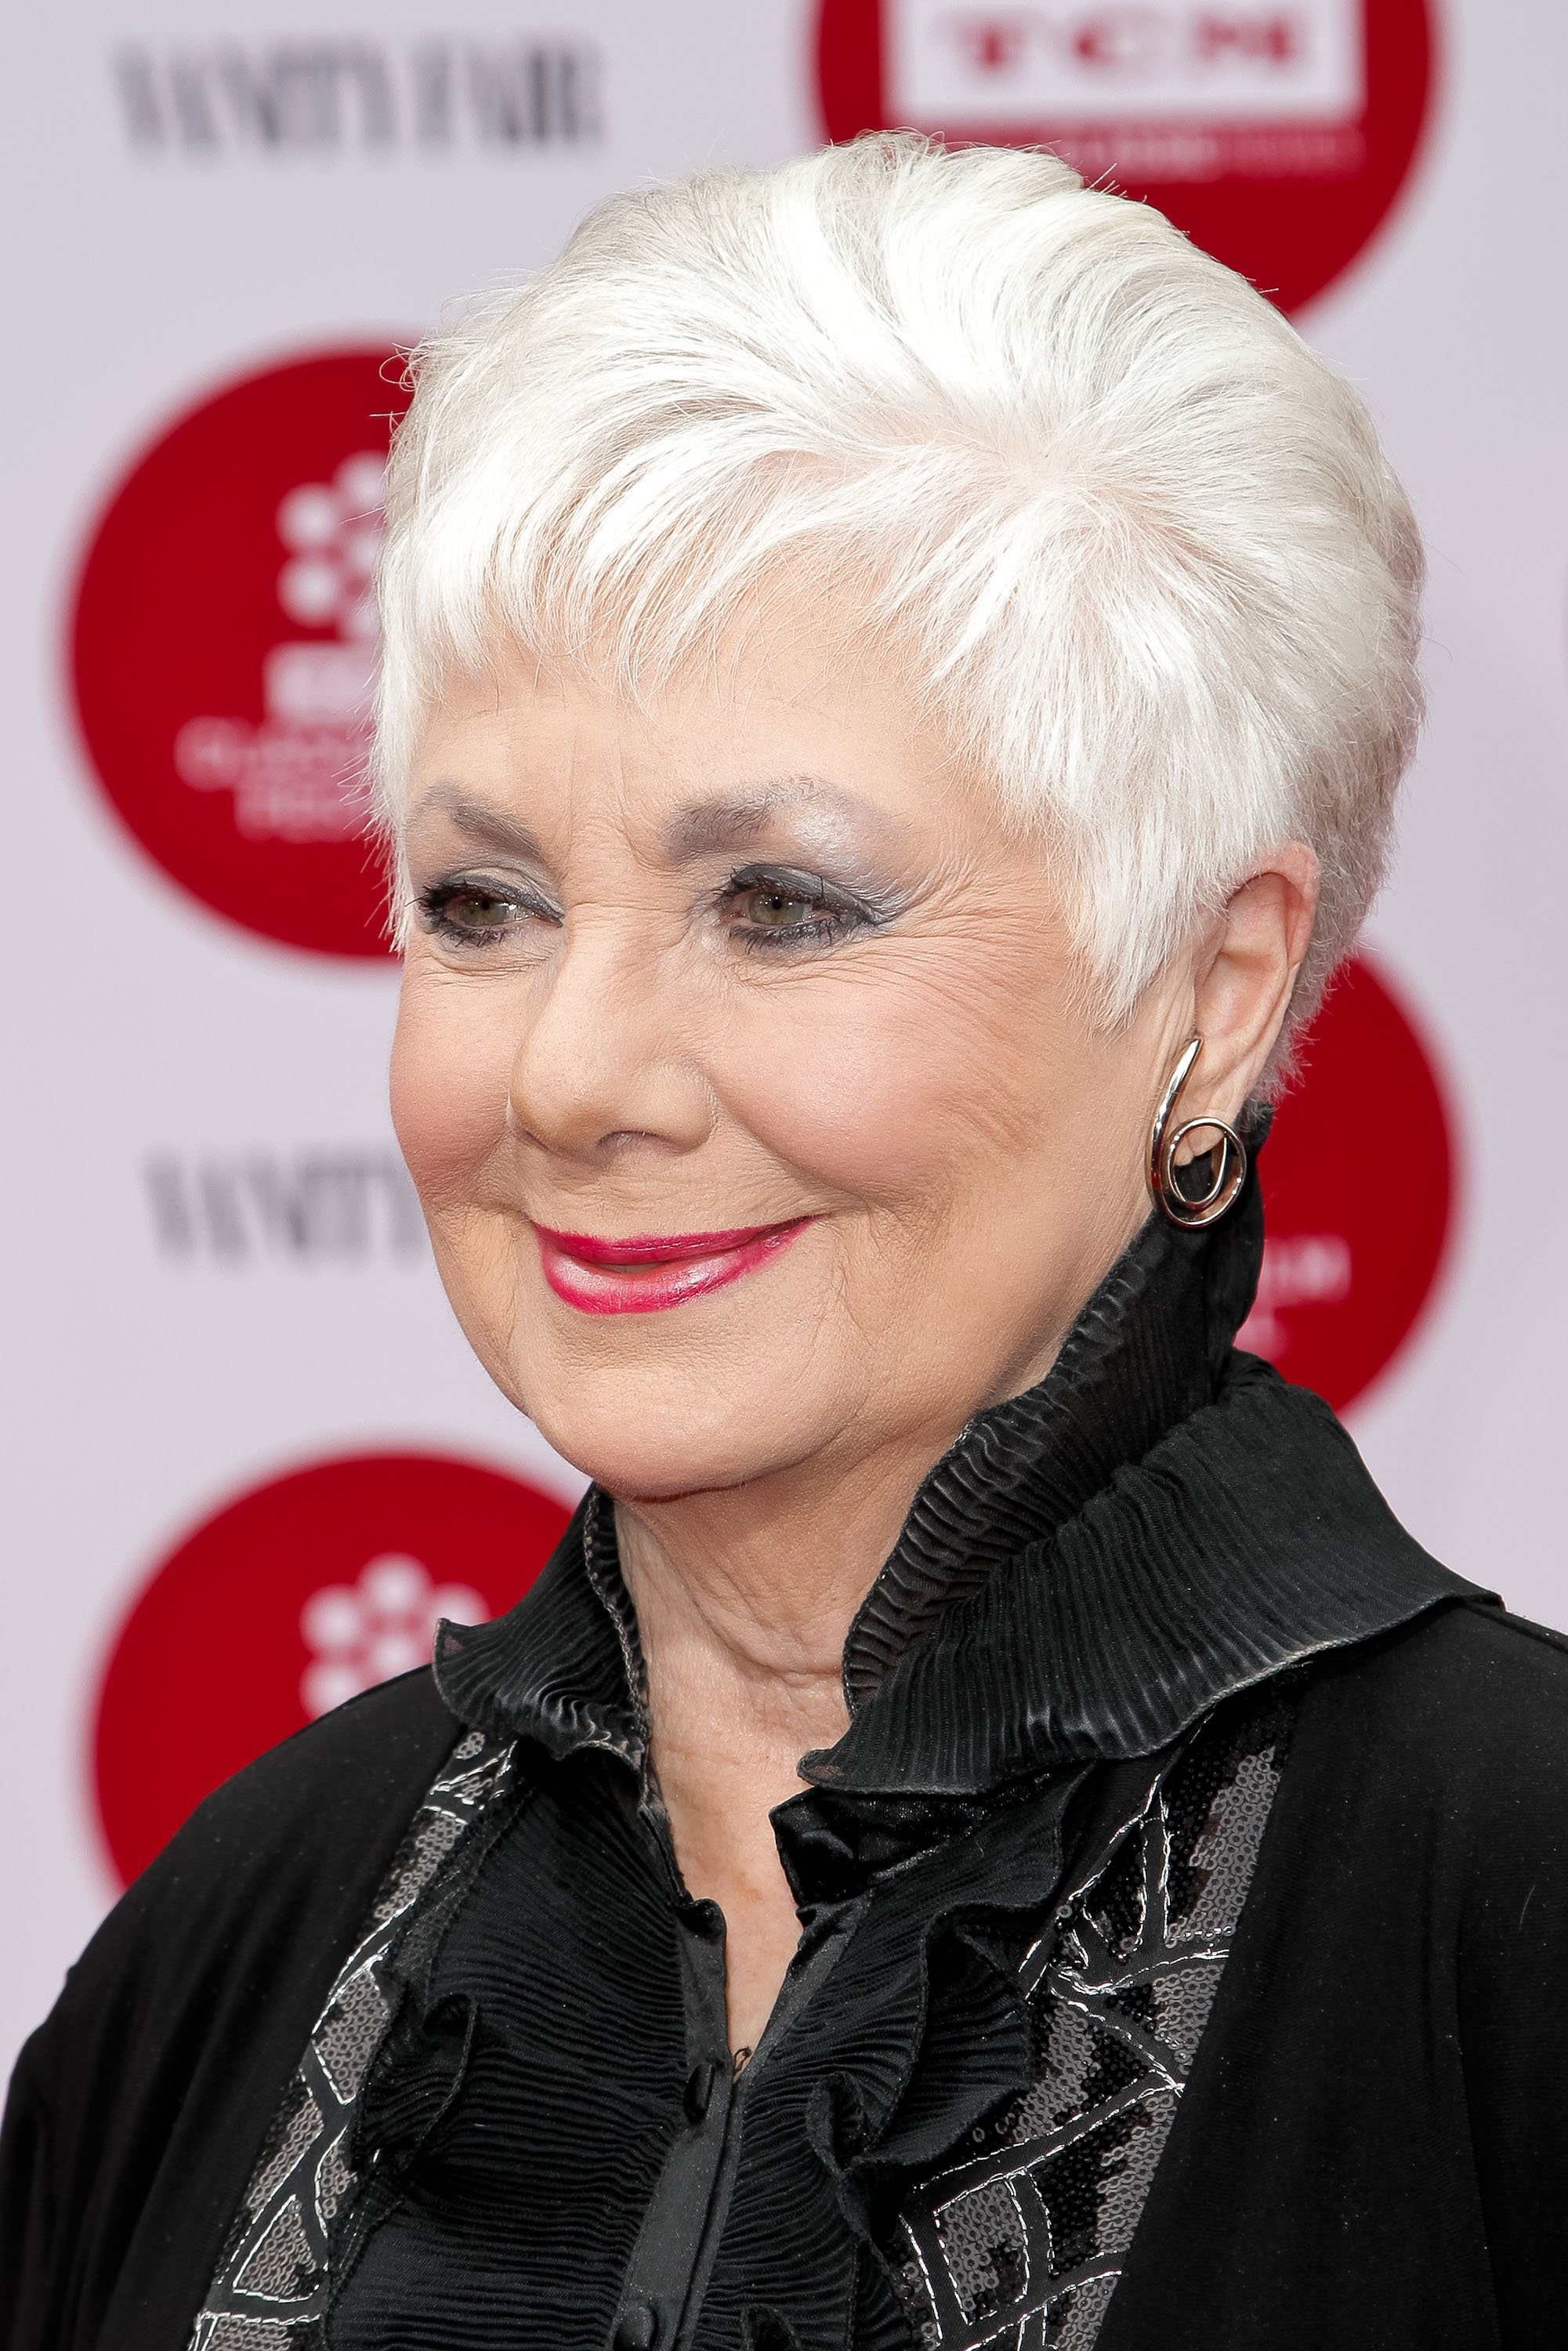 Image Credit: Getty Images / Actress and singer, Shirley Jones poses for a photo.